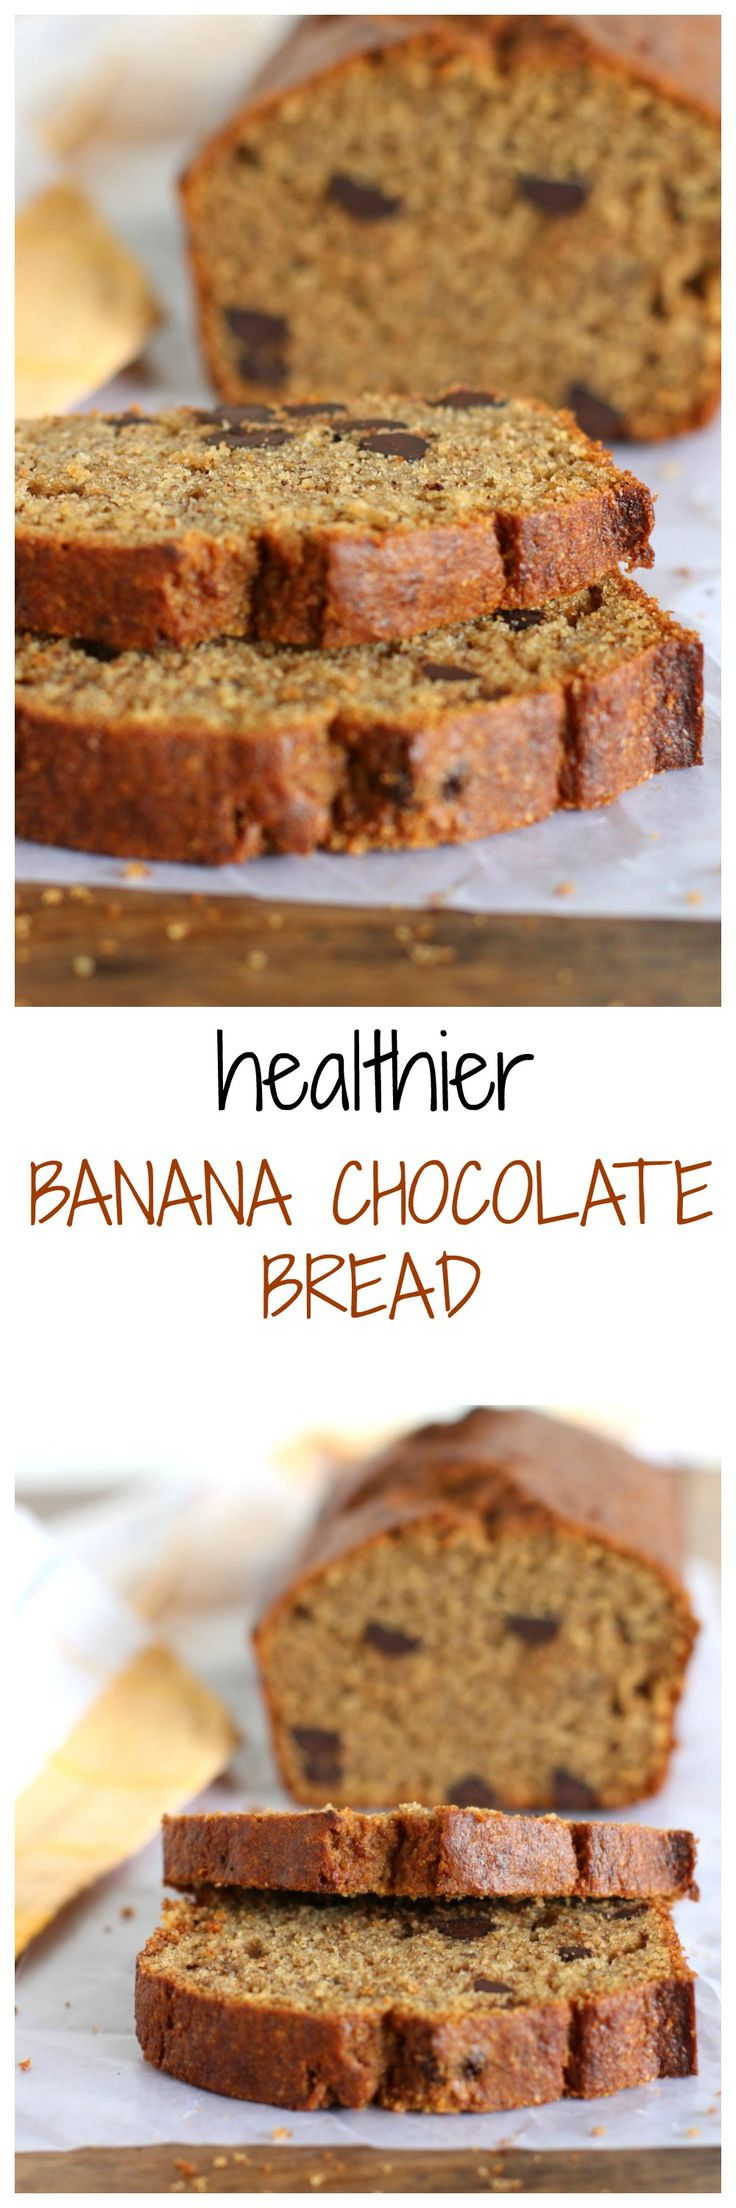 HEALTHIER DARK CHOCOLATE CHIP BANANA BREAD, with coconut oil and chunks of dark chocolate, it will become a favorite fast.